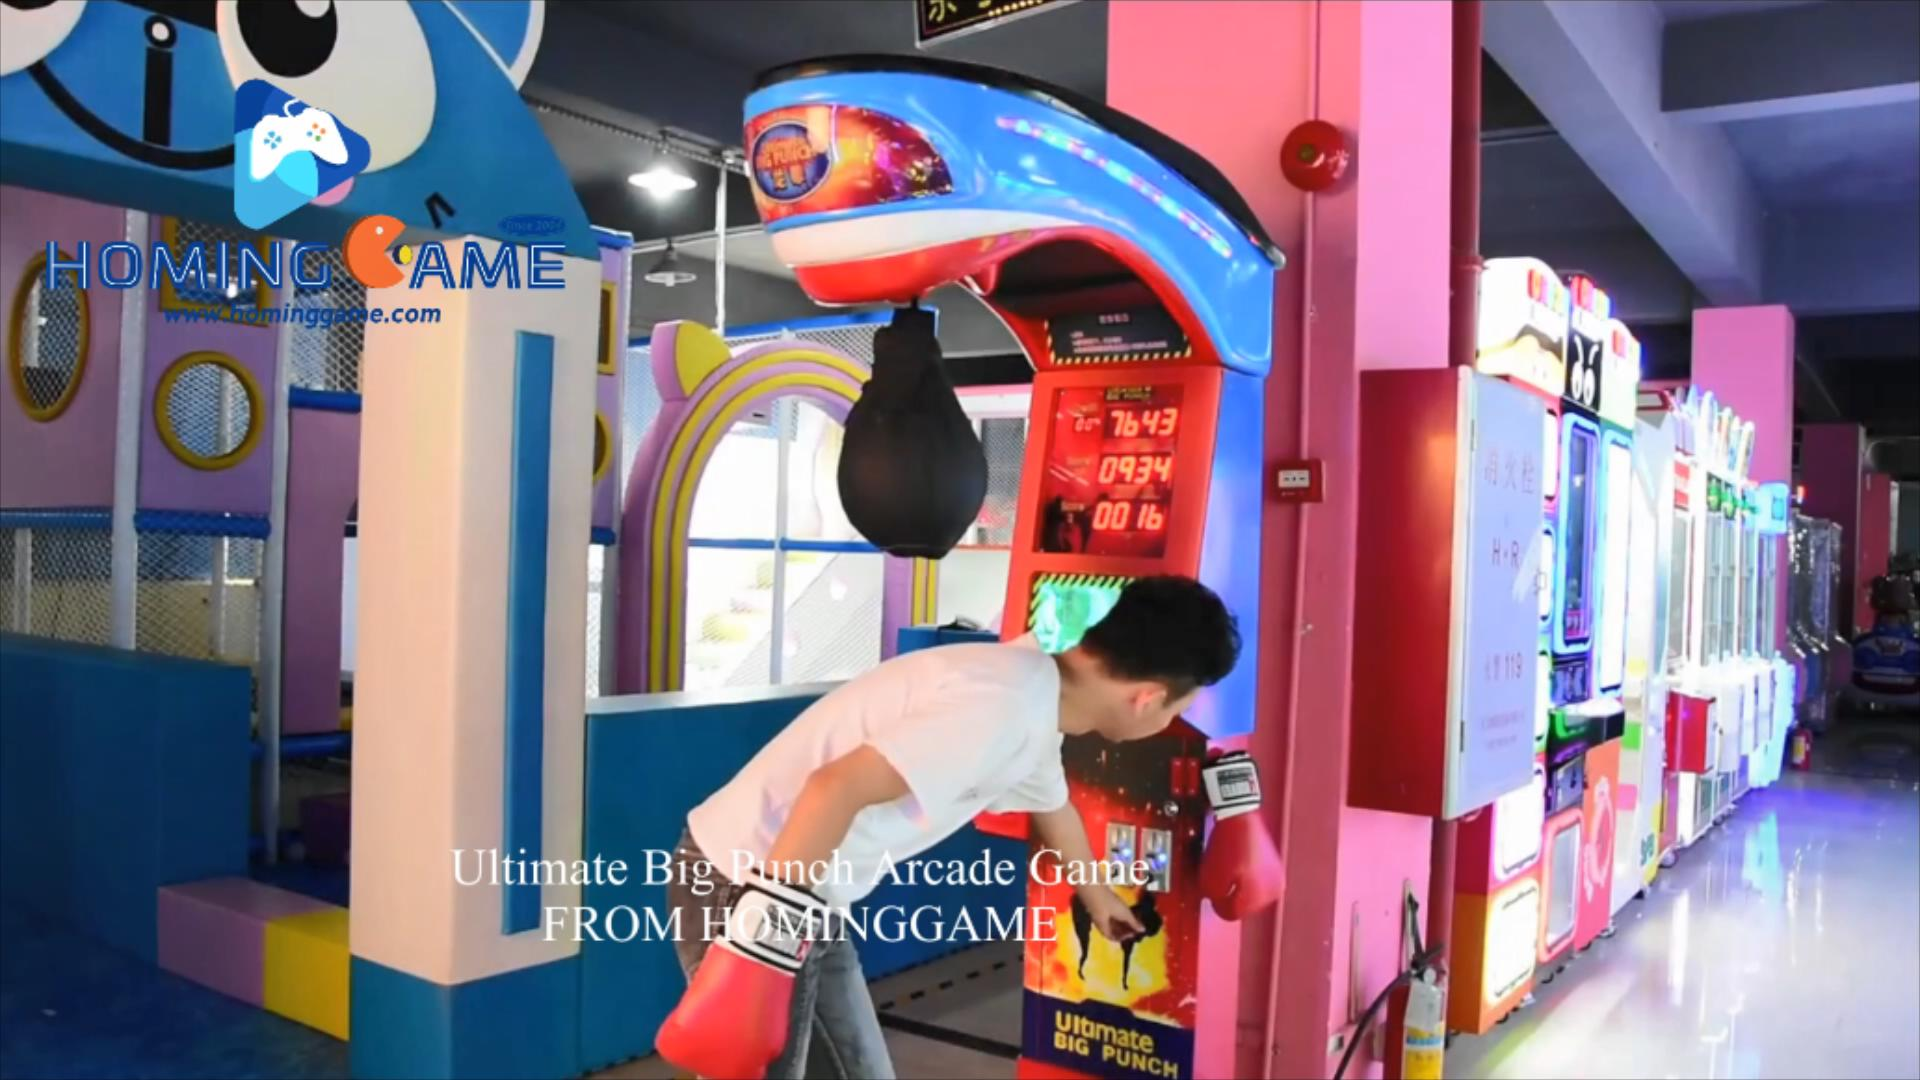 2020 Come To Game Center to Challenge Our HomingGame Popular Boxing Game Ultimate Big Punch Boxing Arcade Game Machine(Order Call Whatsapp:+8618688409495),ultimate big punch boxing arcade game machine,ultimate big punch boxing game machine,boxing game machine,boxing arcade game machine,ultimate big punch game machine,boxing machine,boxing game,boxing arcade game,boxing redemption game machine,lutiamte big punch payout cocola prize game machine,boxing prize game machine,game machine,arcade game machine,coin operated game machine,indoor game machine,electrical game machine,amusement park game equipment,game equipment,amusement machine,entertainment game machine,family entertainment game machine,sports game,sports game machine,redemption game machine,lottery game machine,prize game machine,boxing arcade,hominggame,www.gametube.hk,hominggame game machine,hominggame boxing machine,ultimate big punch boxing arcade game